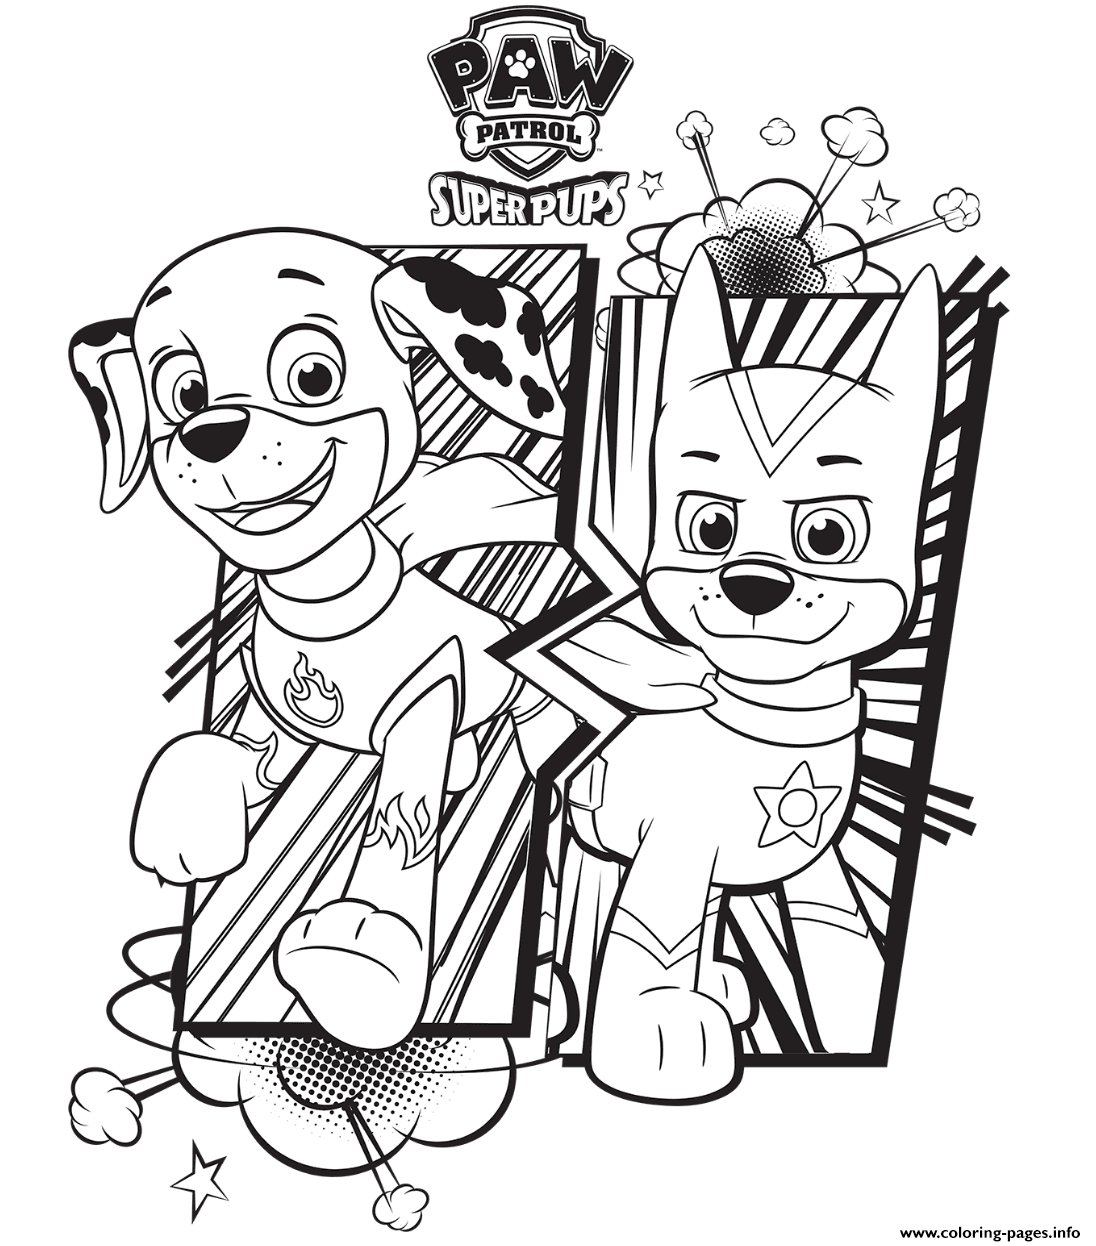 Paw patrol super pups coloring pages printable